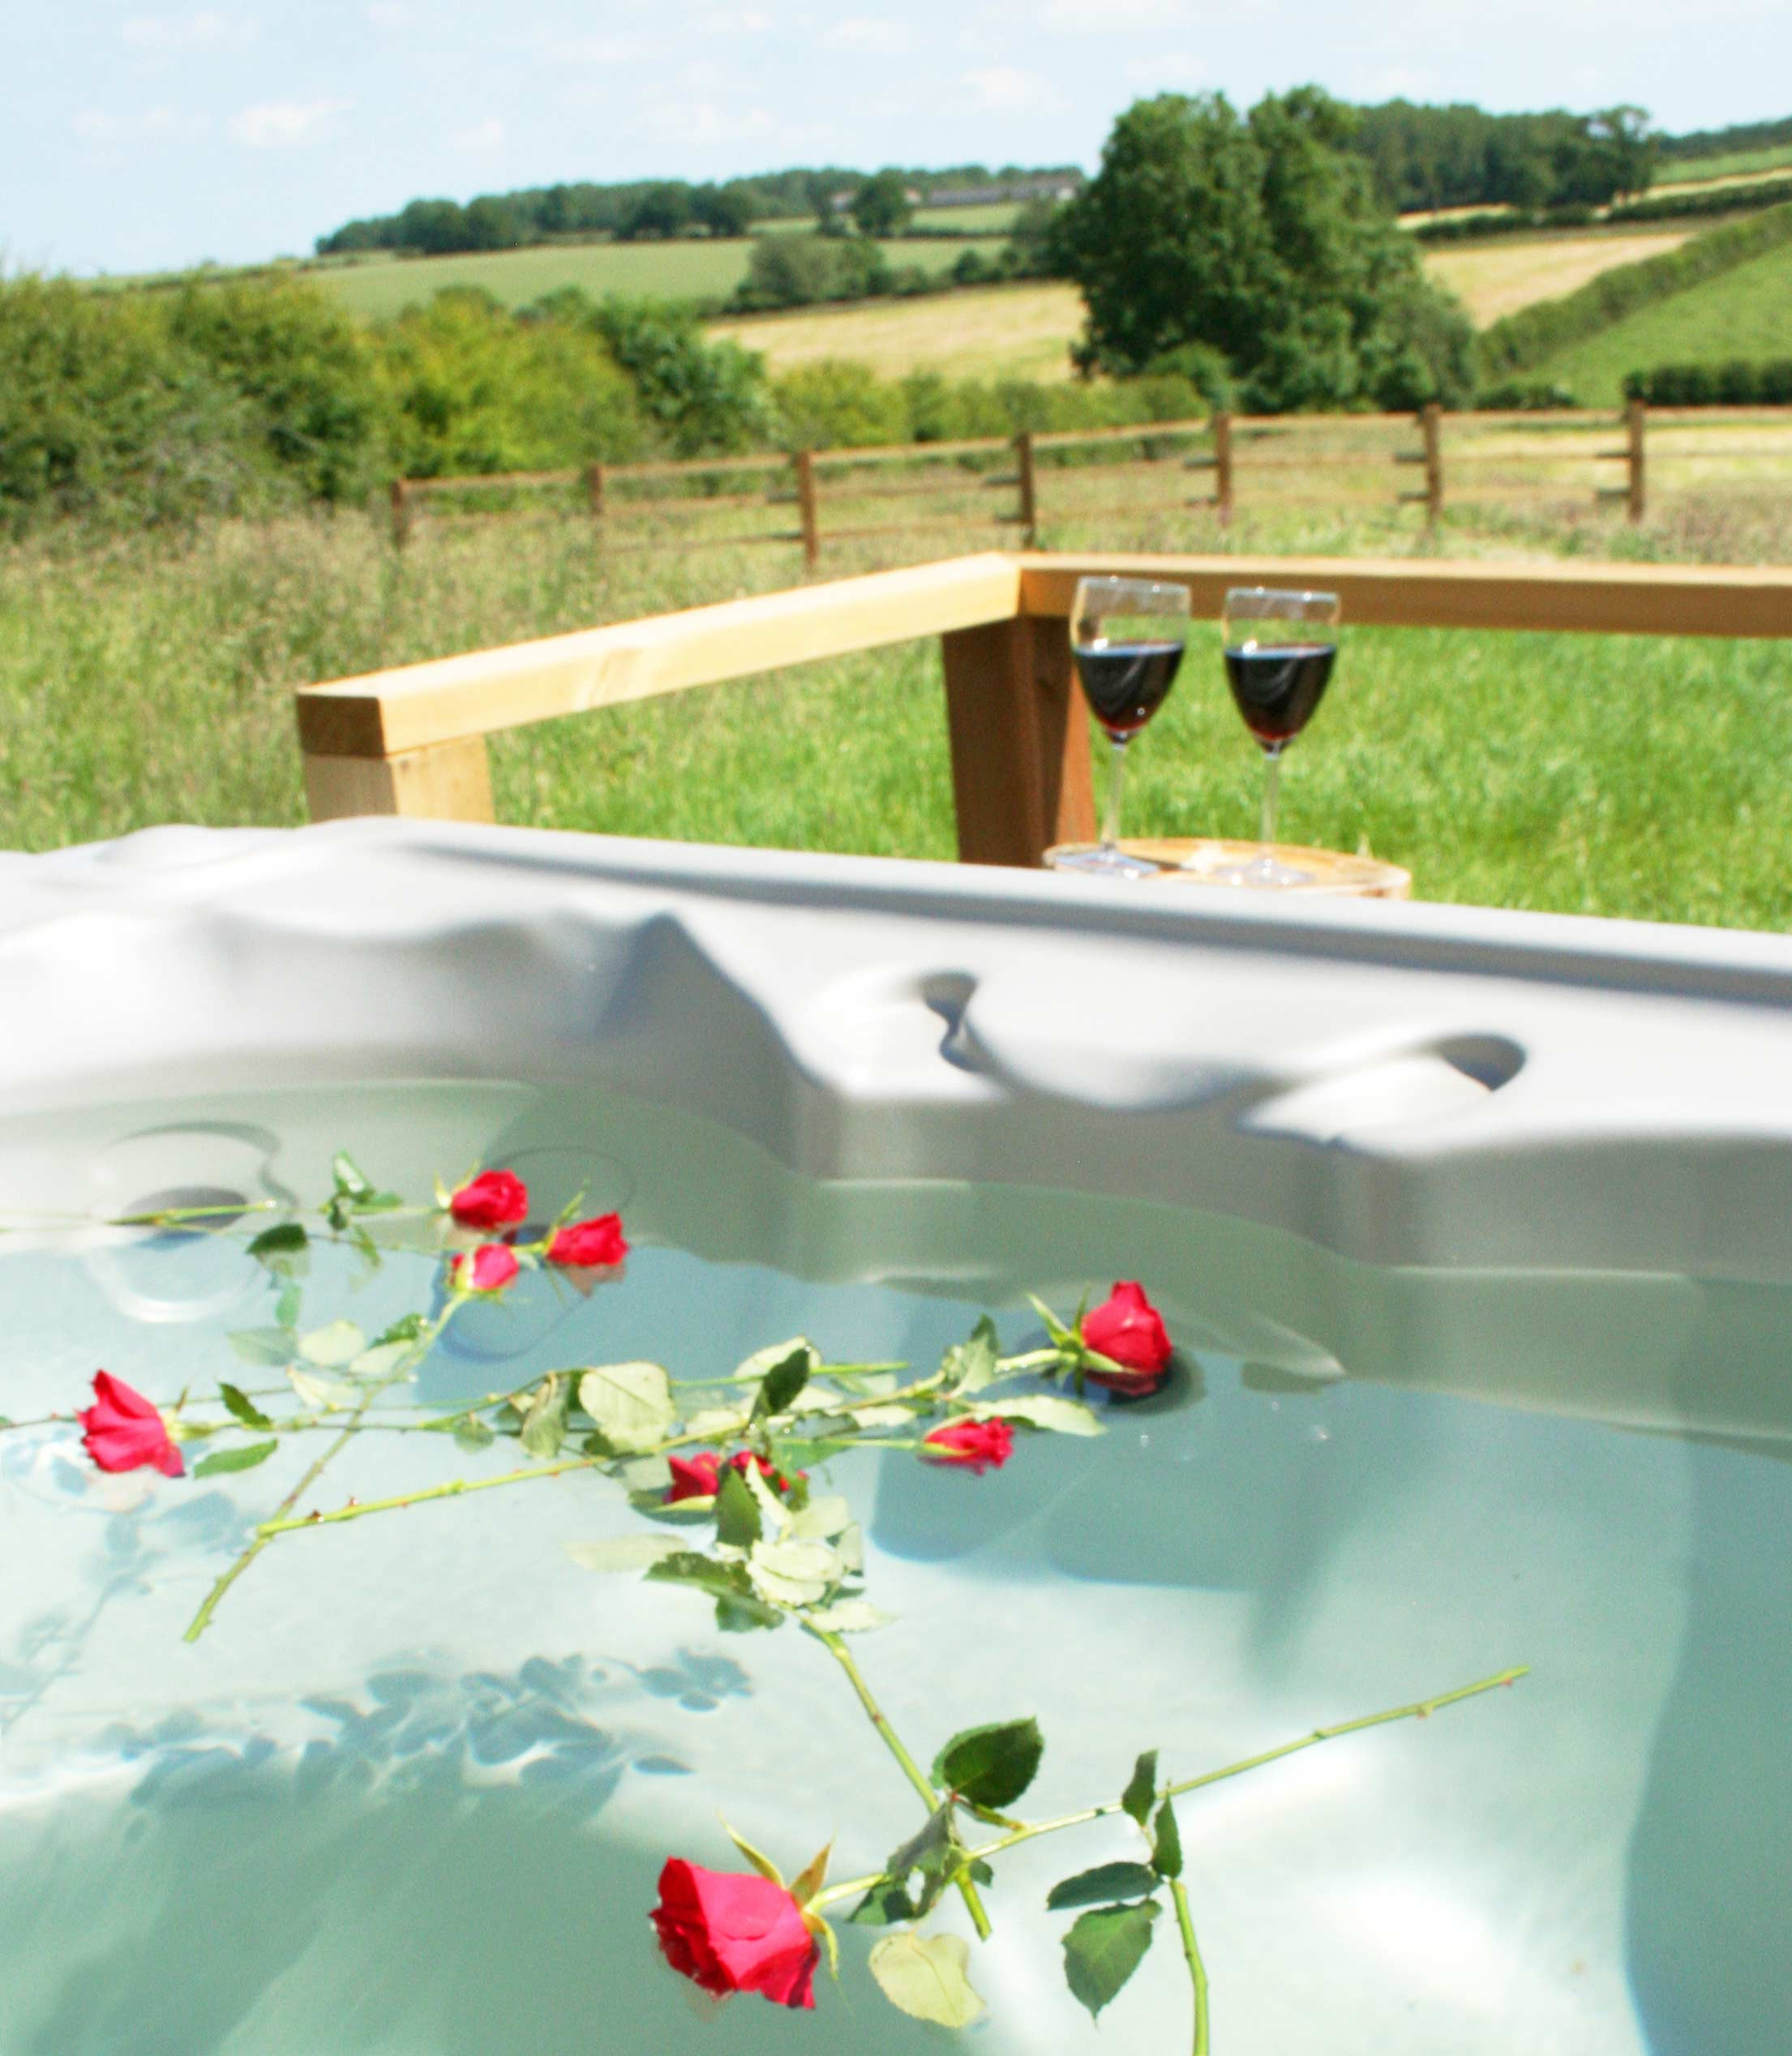 Hot tub at Village Farm Getaway, holidays glamping and luxury camping in East Midlands and Leicestershire